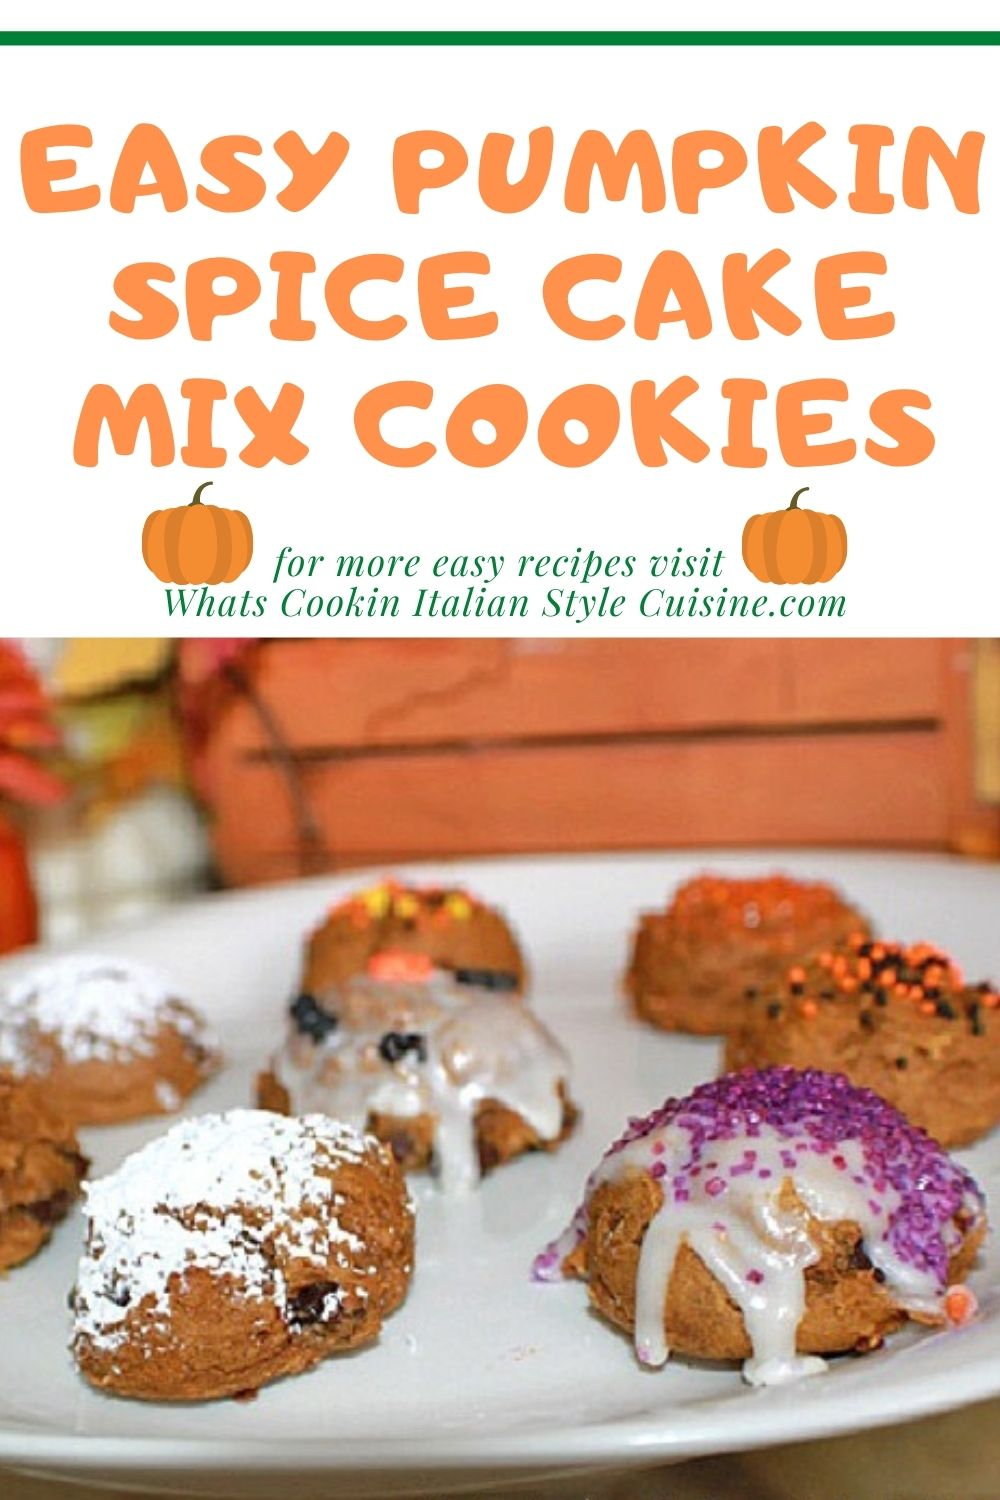 this is a pin for cookies with pumpkin spice using a cake mix